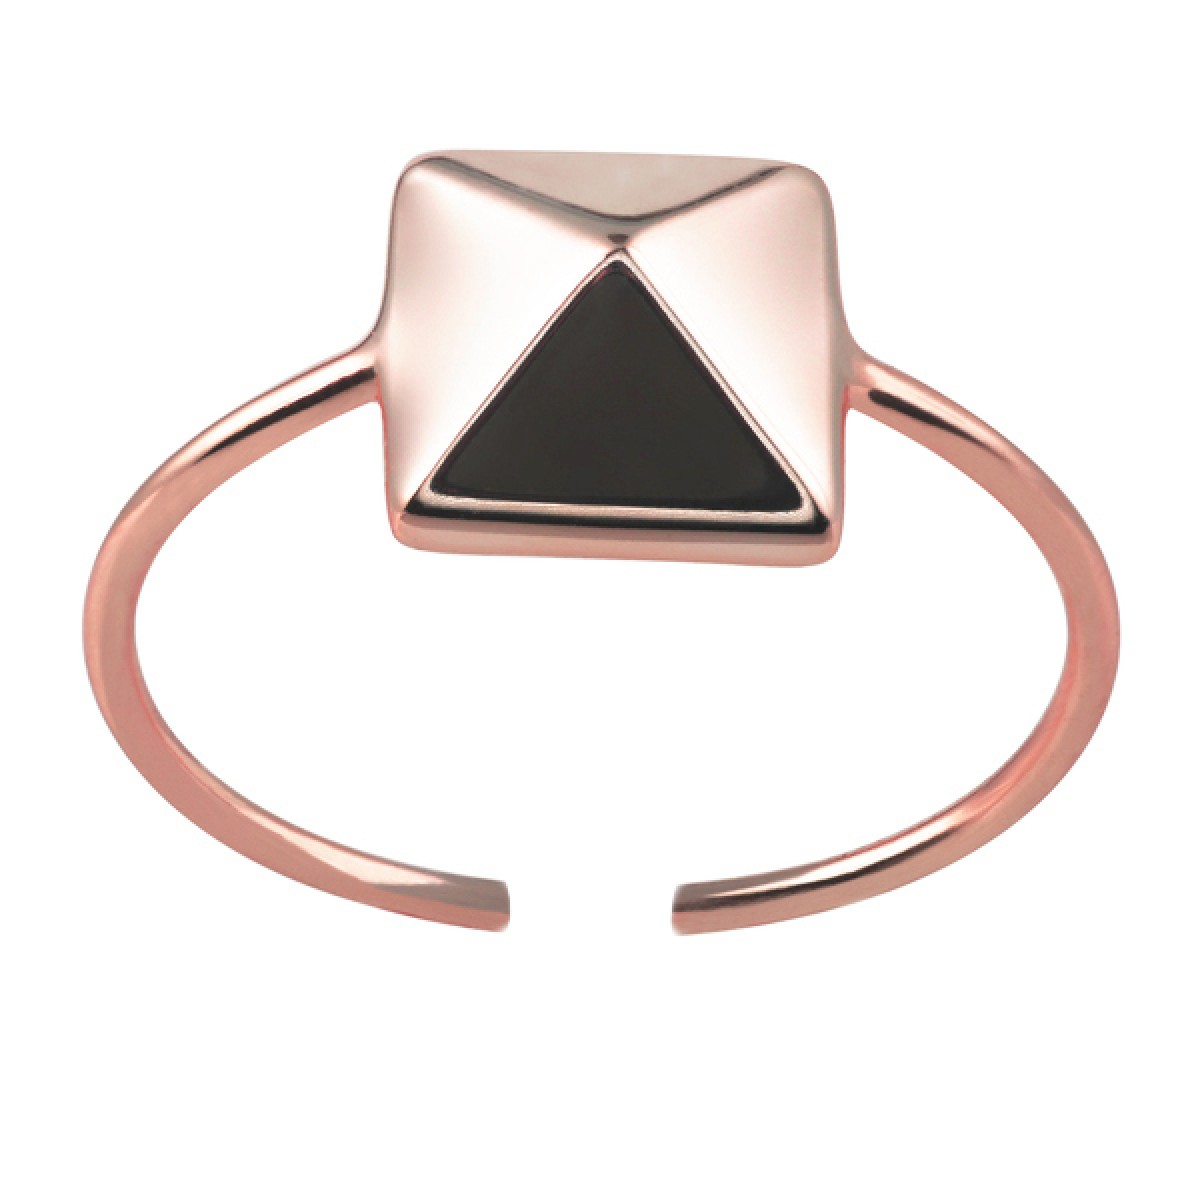 Anoa Ring Thora 925 Sterling Silber